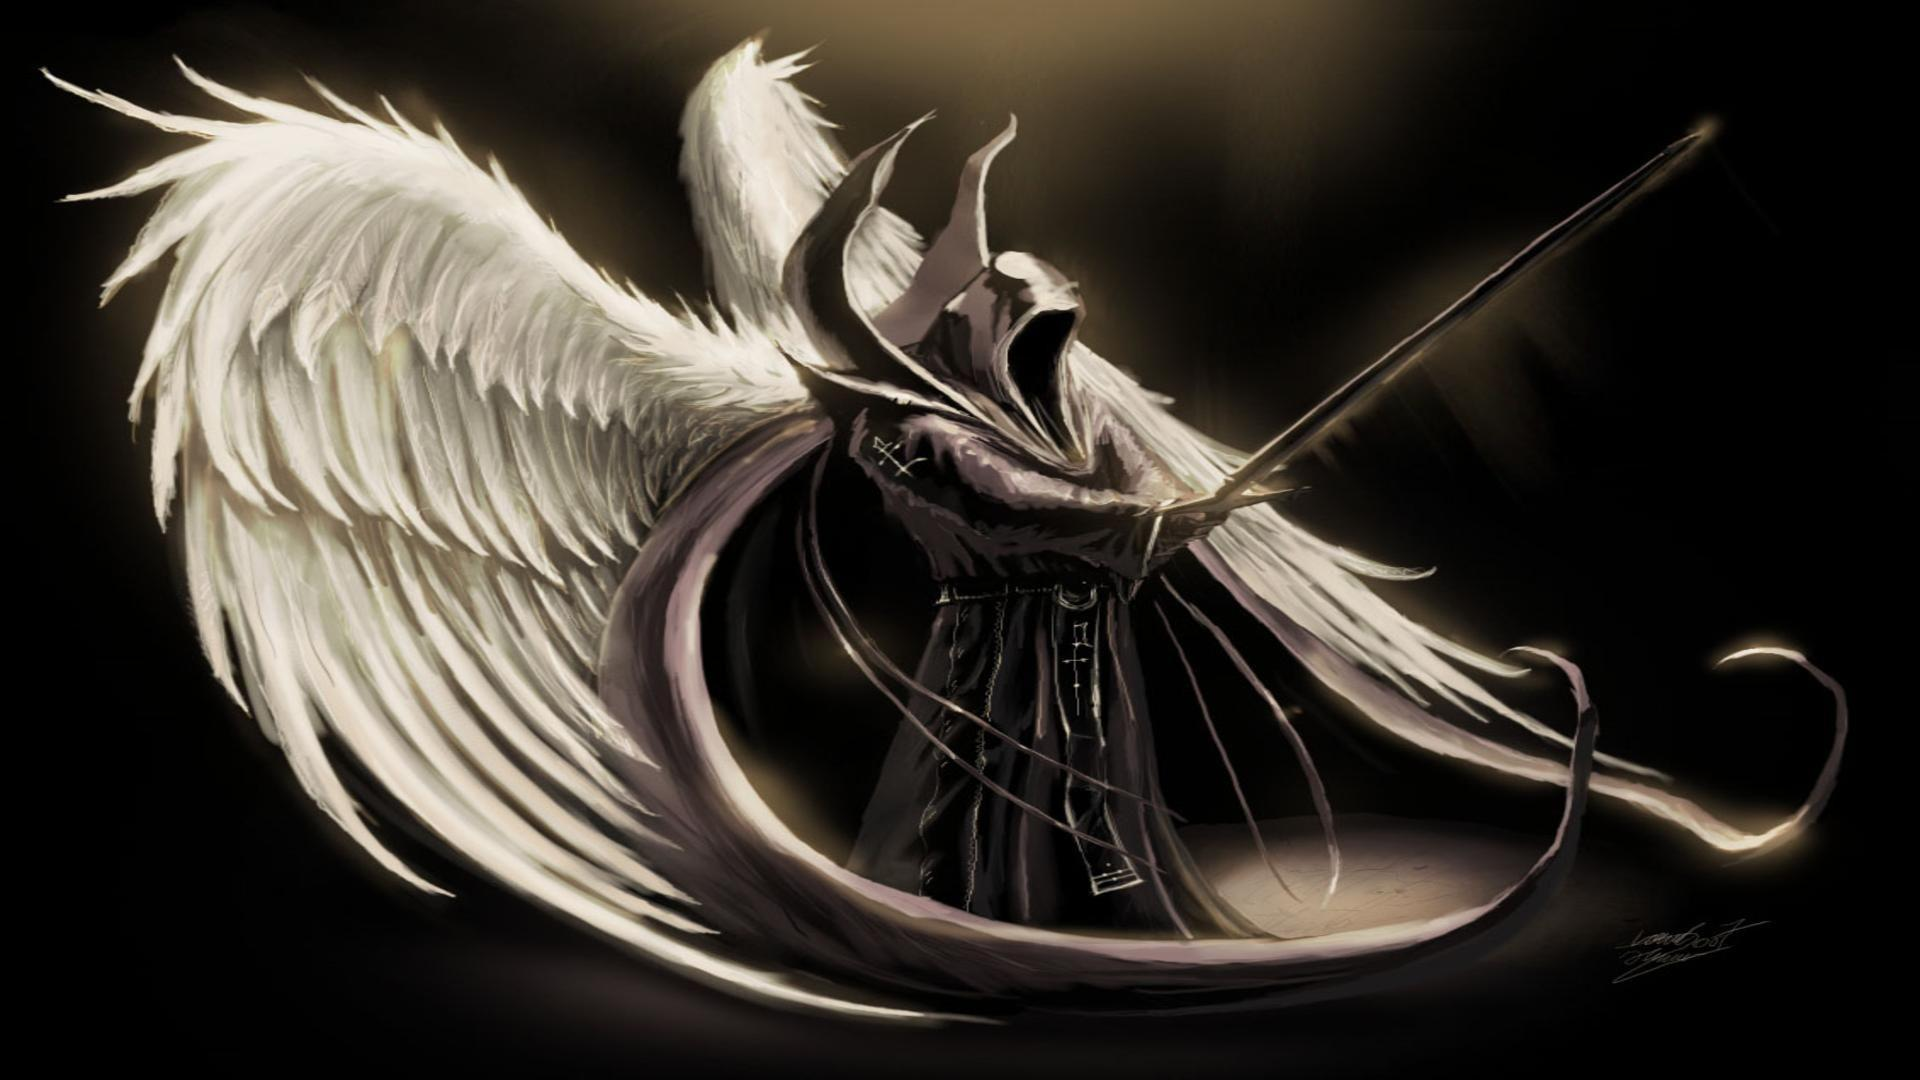 Dark angel wings desktop background   wallpaper image 1920x1080